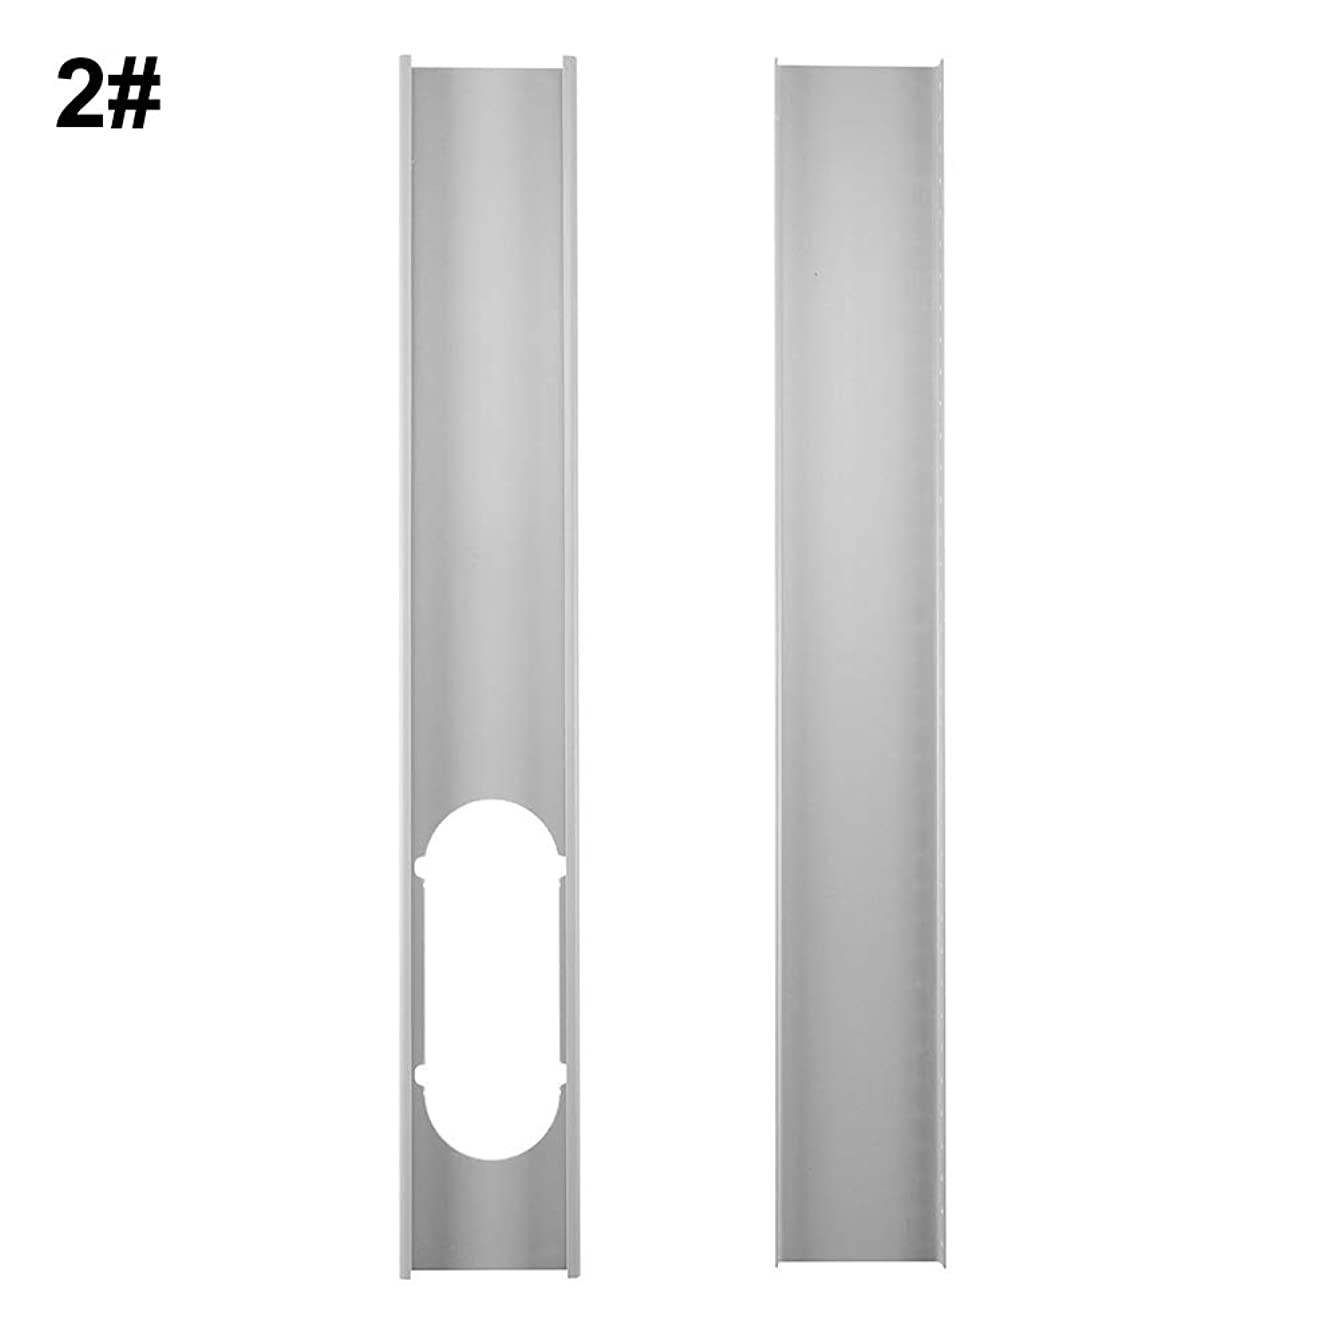 LinSHdi426 2Pcs 1.3M Window Slide Kit Plate/6inch Window Adapter for Portable Air Conditioner2Pcs Window Slide Kit Plate/6inch Window Adapter for Portable Air Conditioner 2#